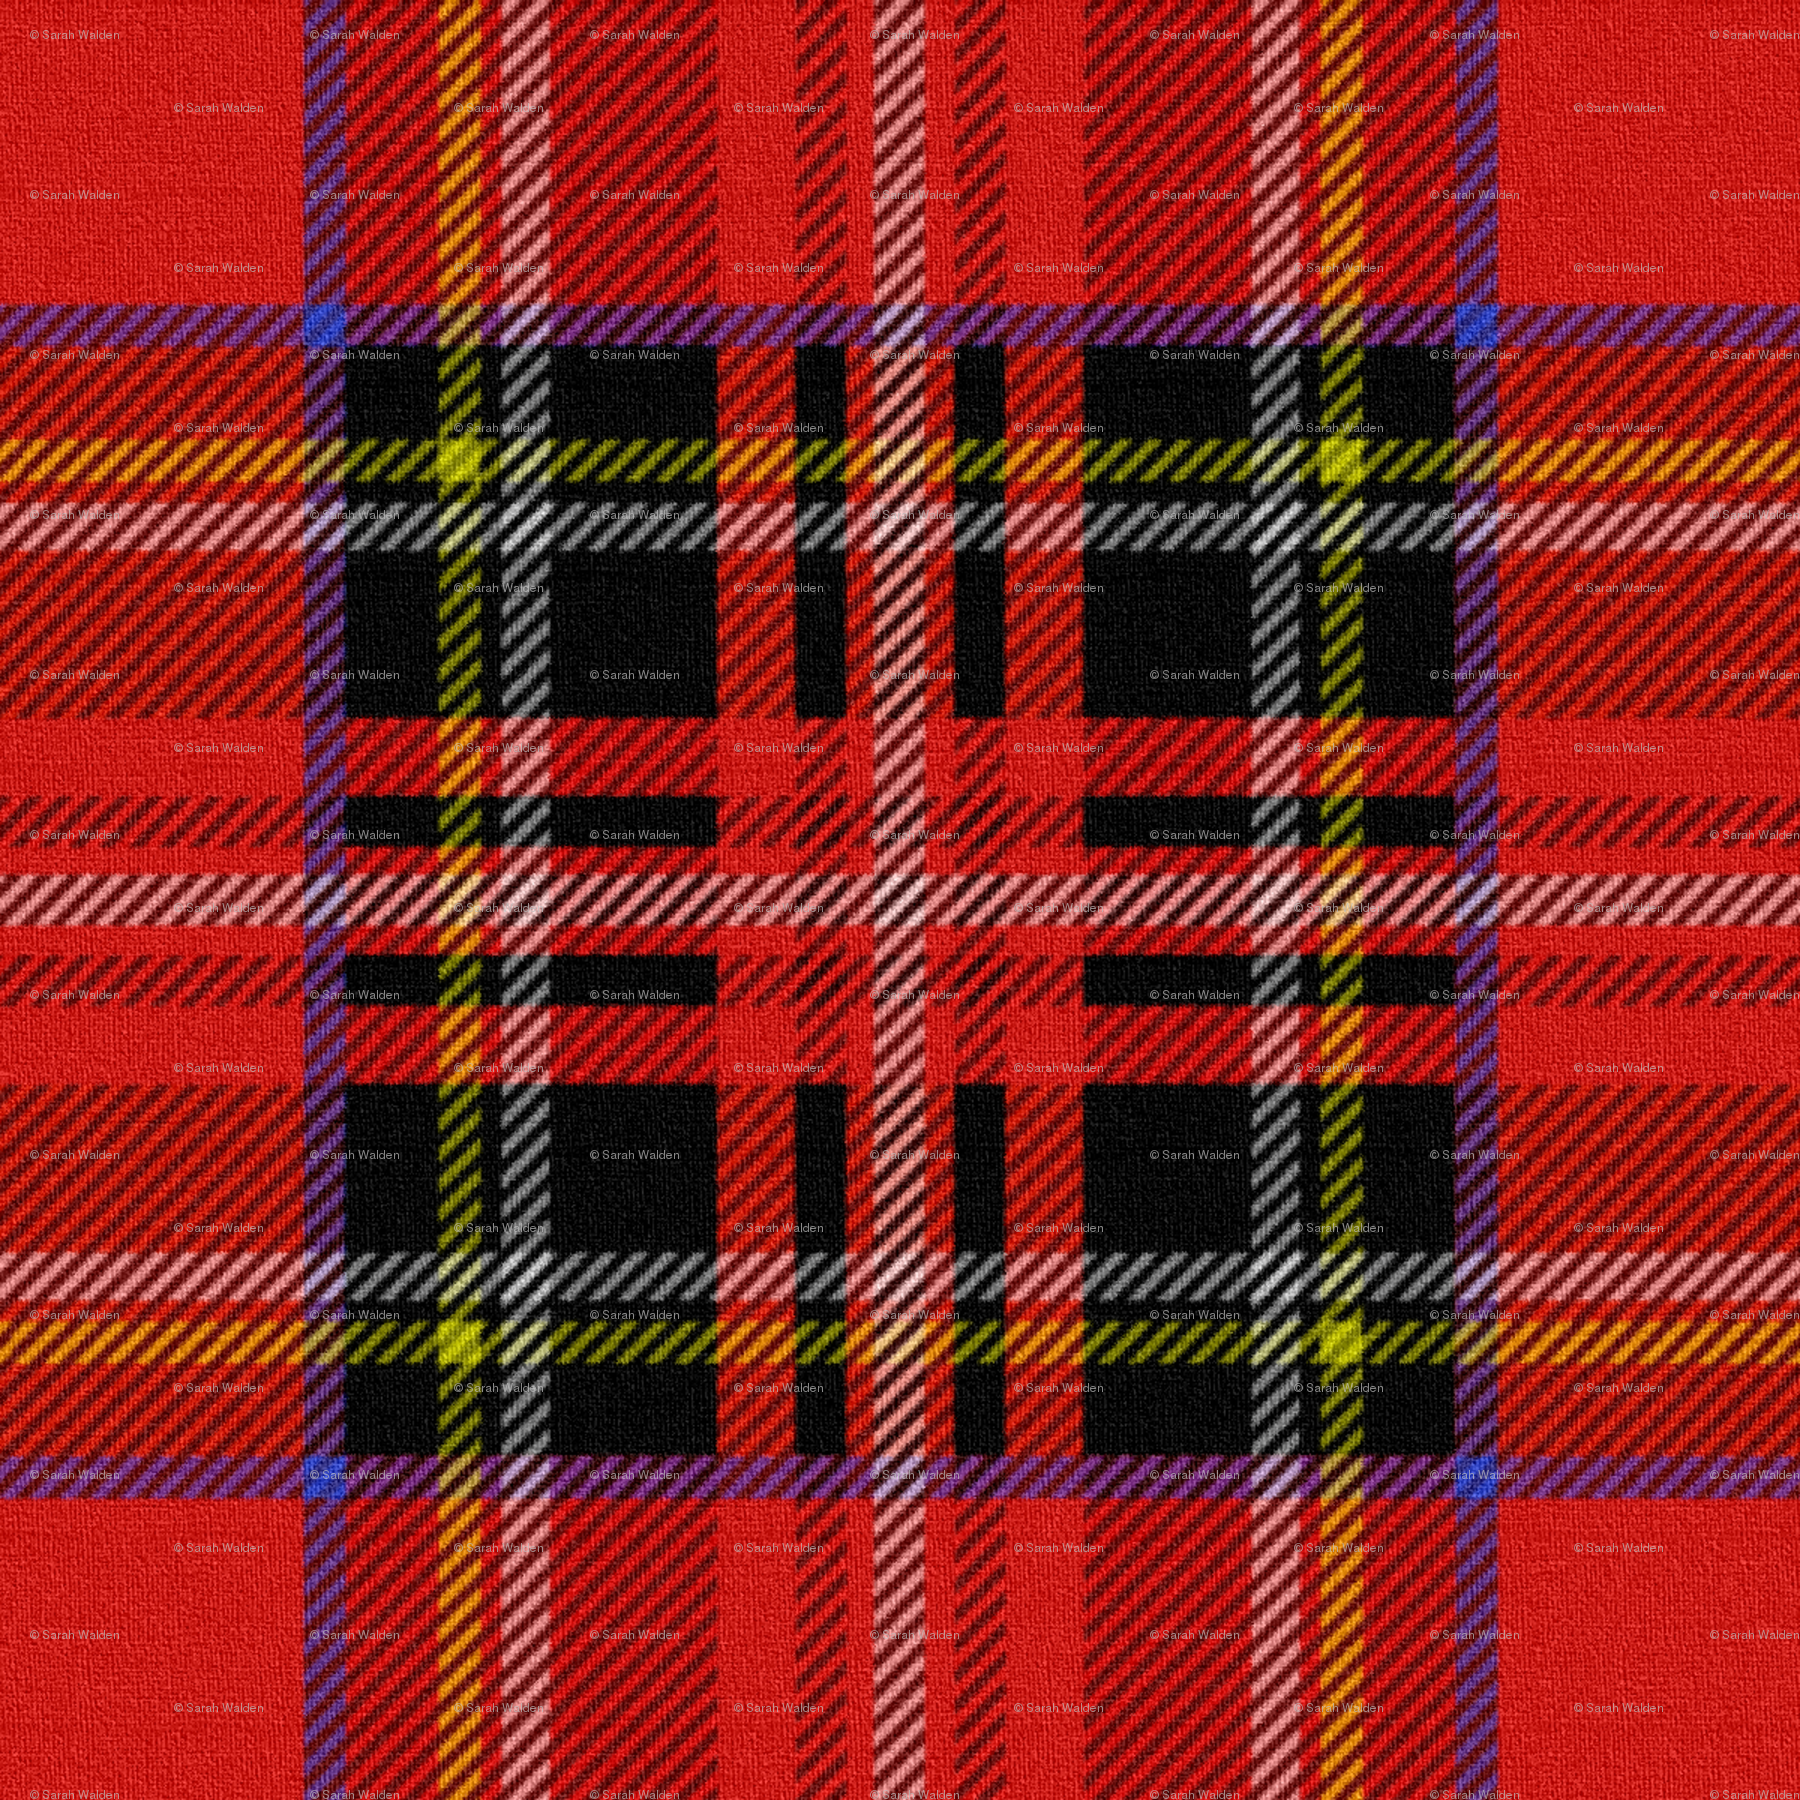 Pictures of Tartan HD, 1800x1800, 02/04/2014